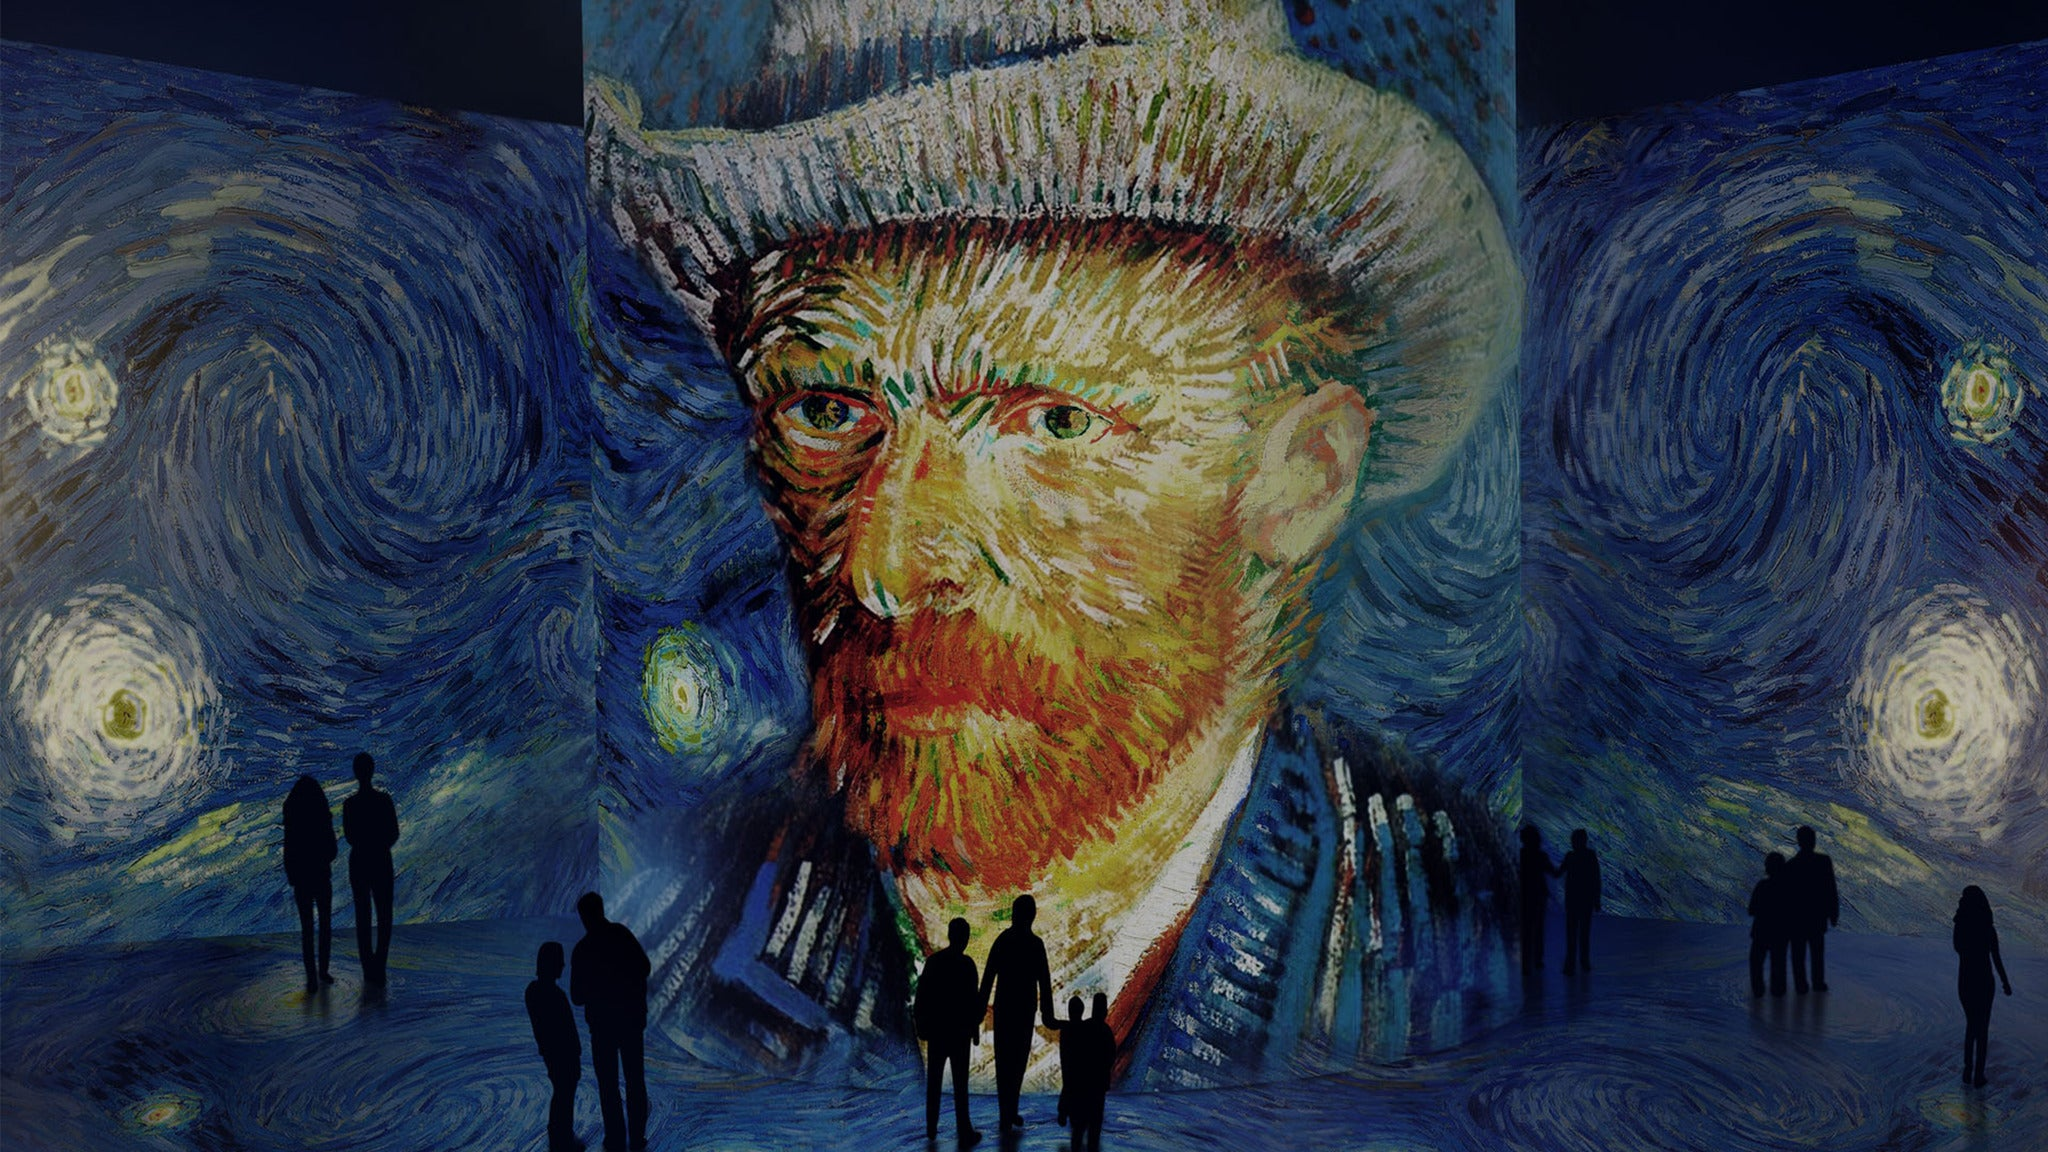 Immersive Van Gogh (Peak) at SVN West San Francisco